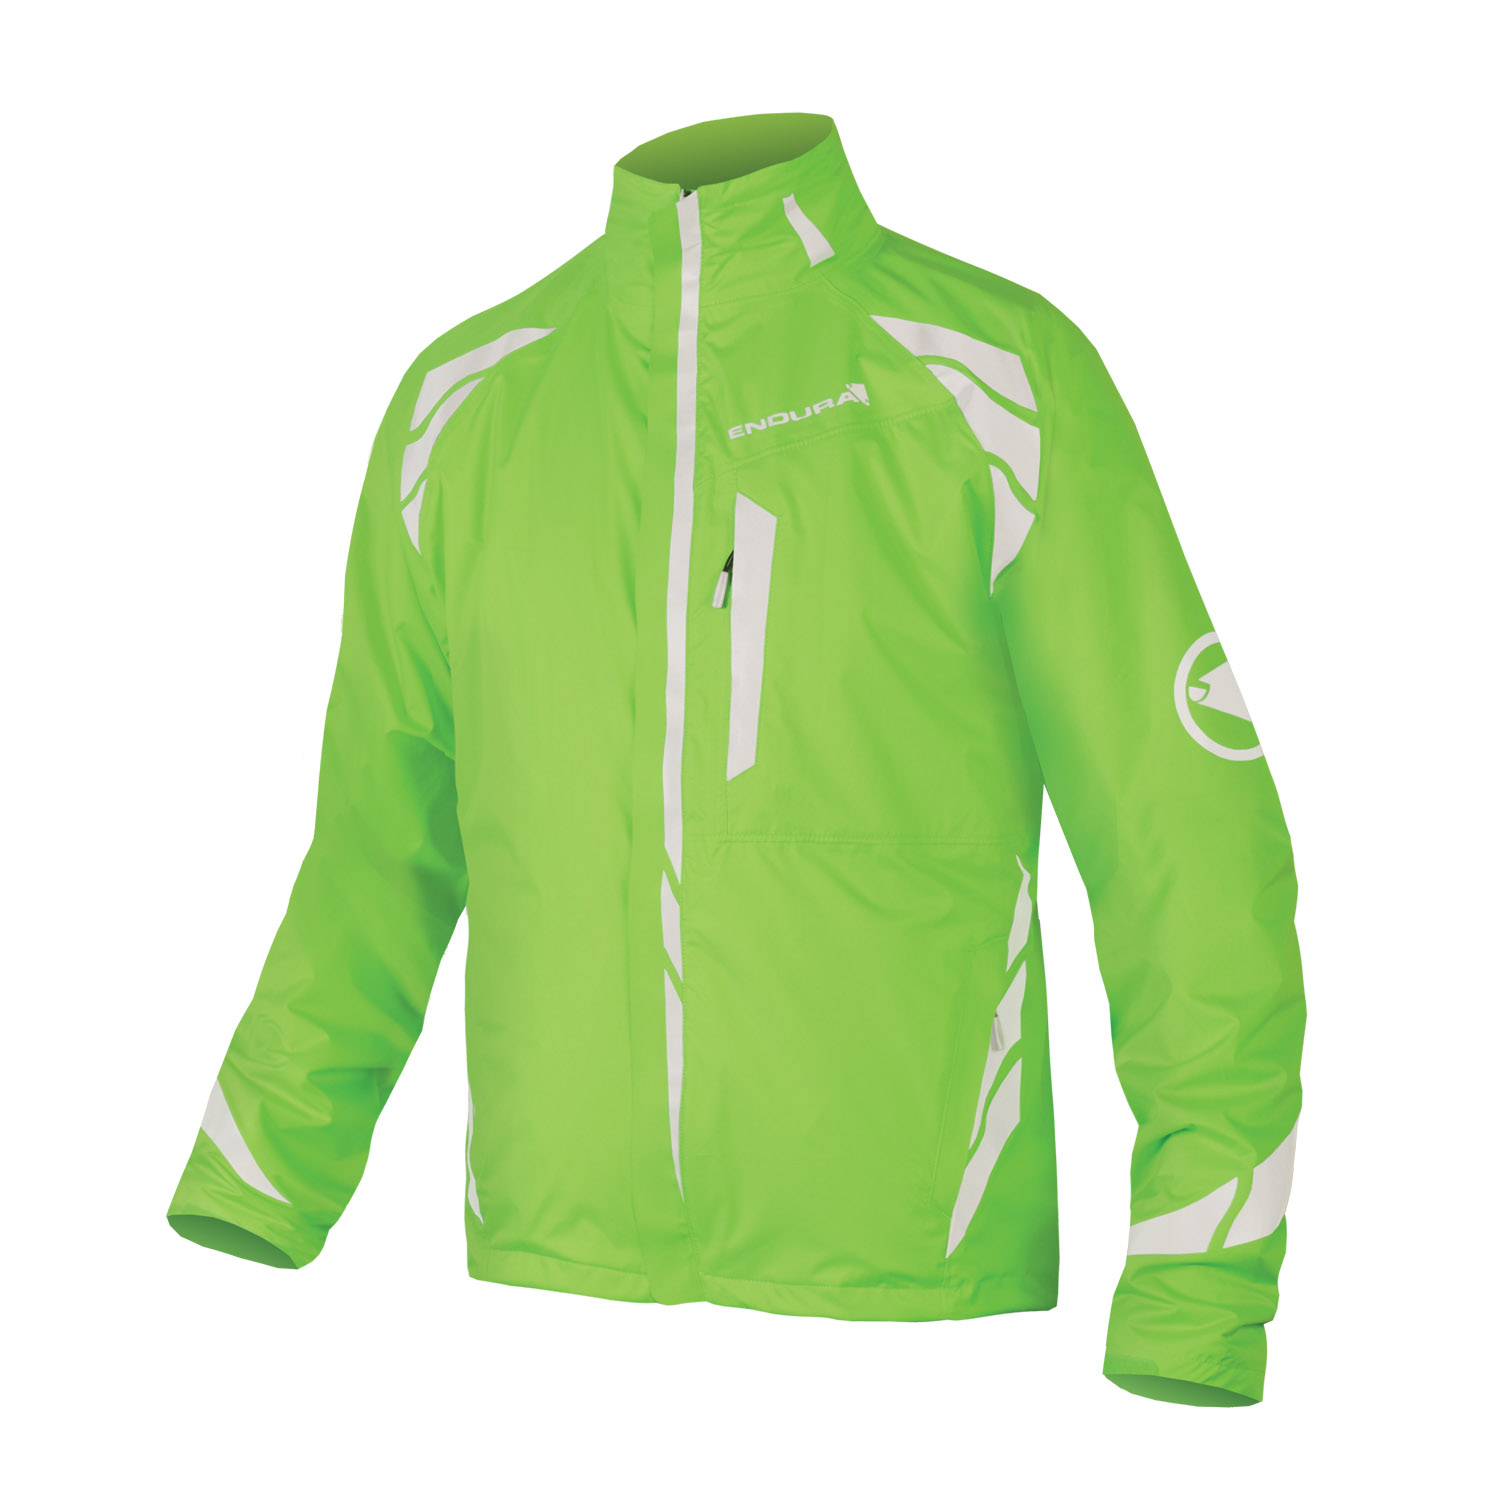 Luminite 4 in 1 Jacket front